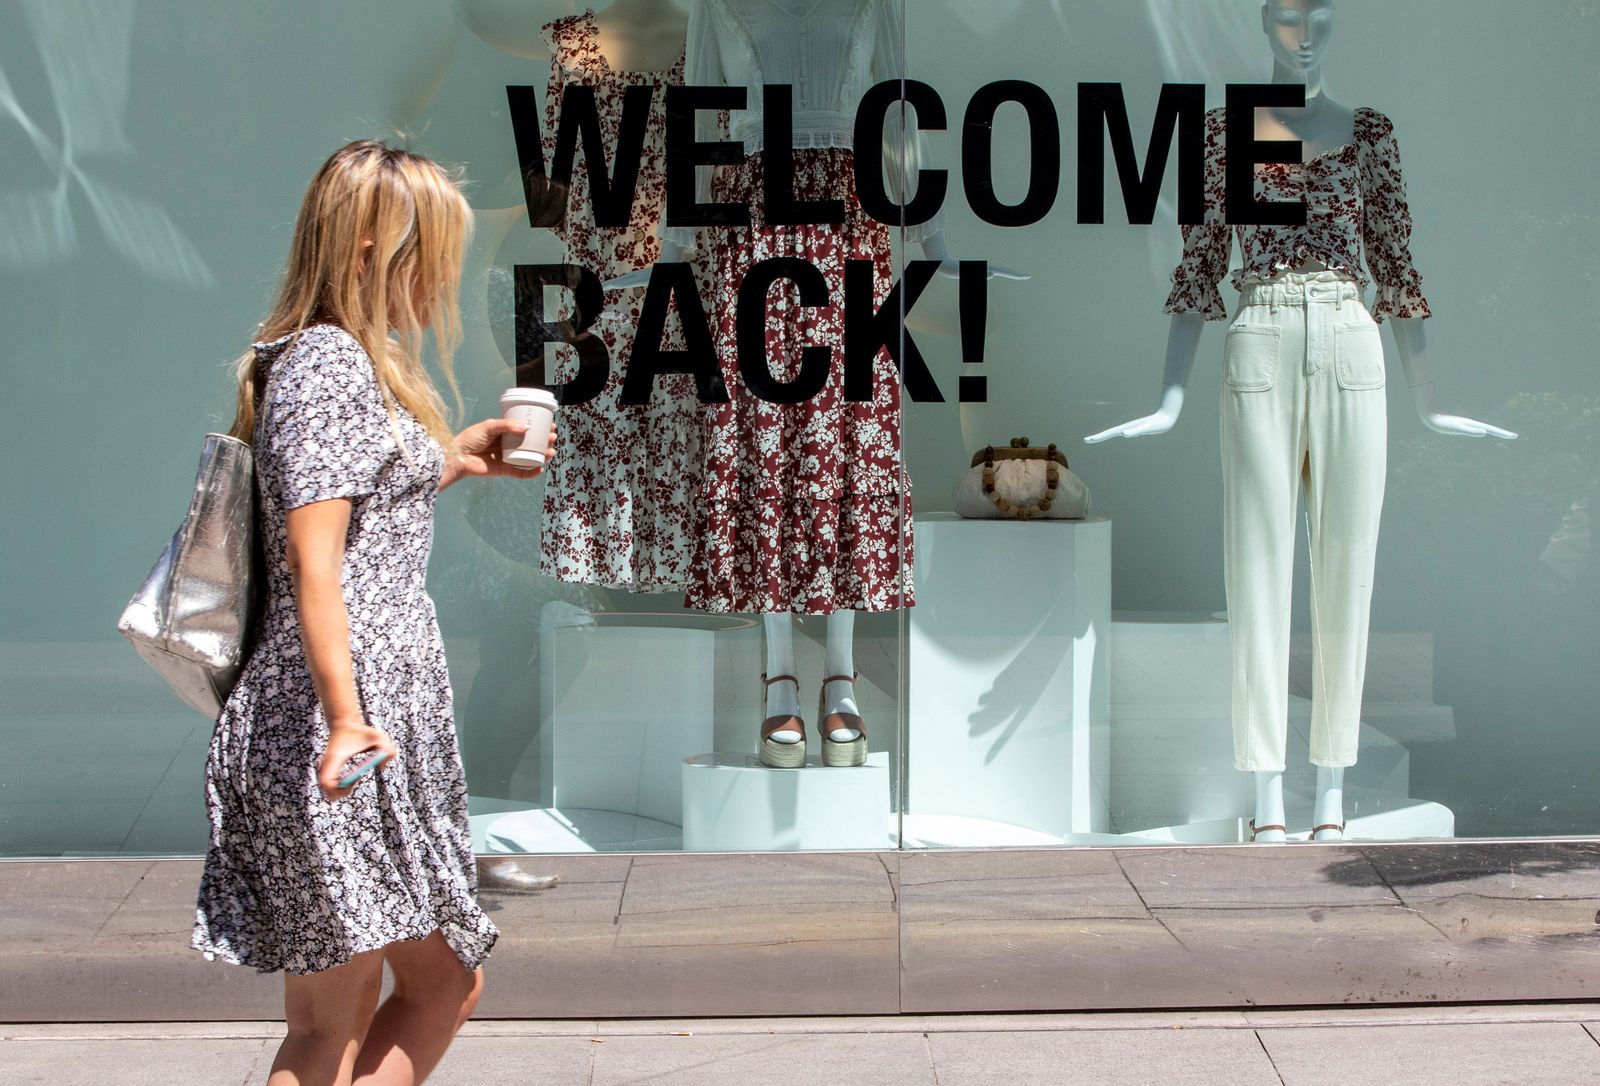 """Welcome Back"" Zara shop"